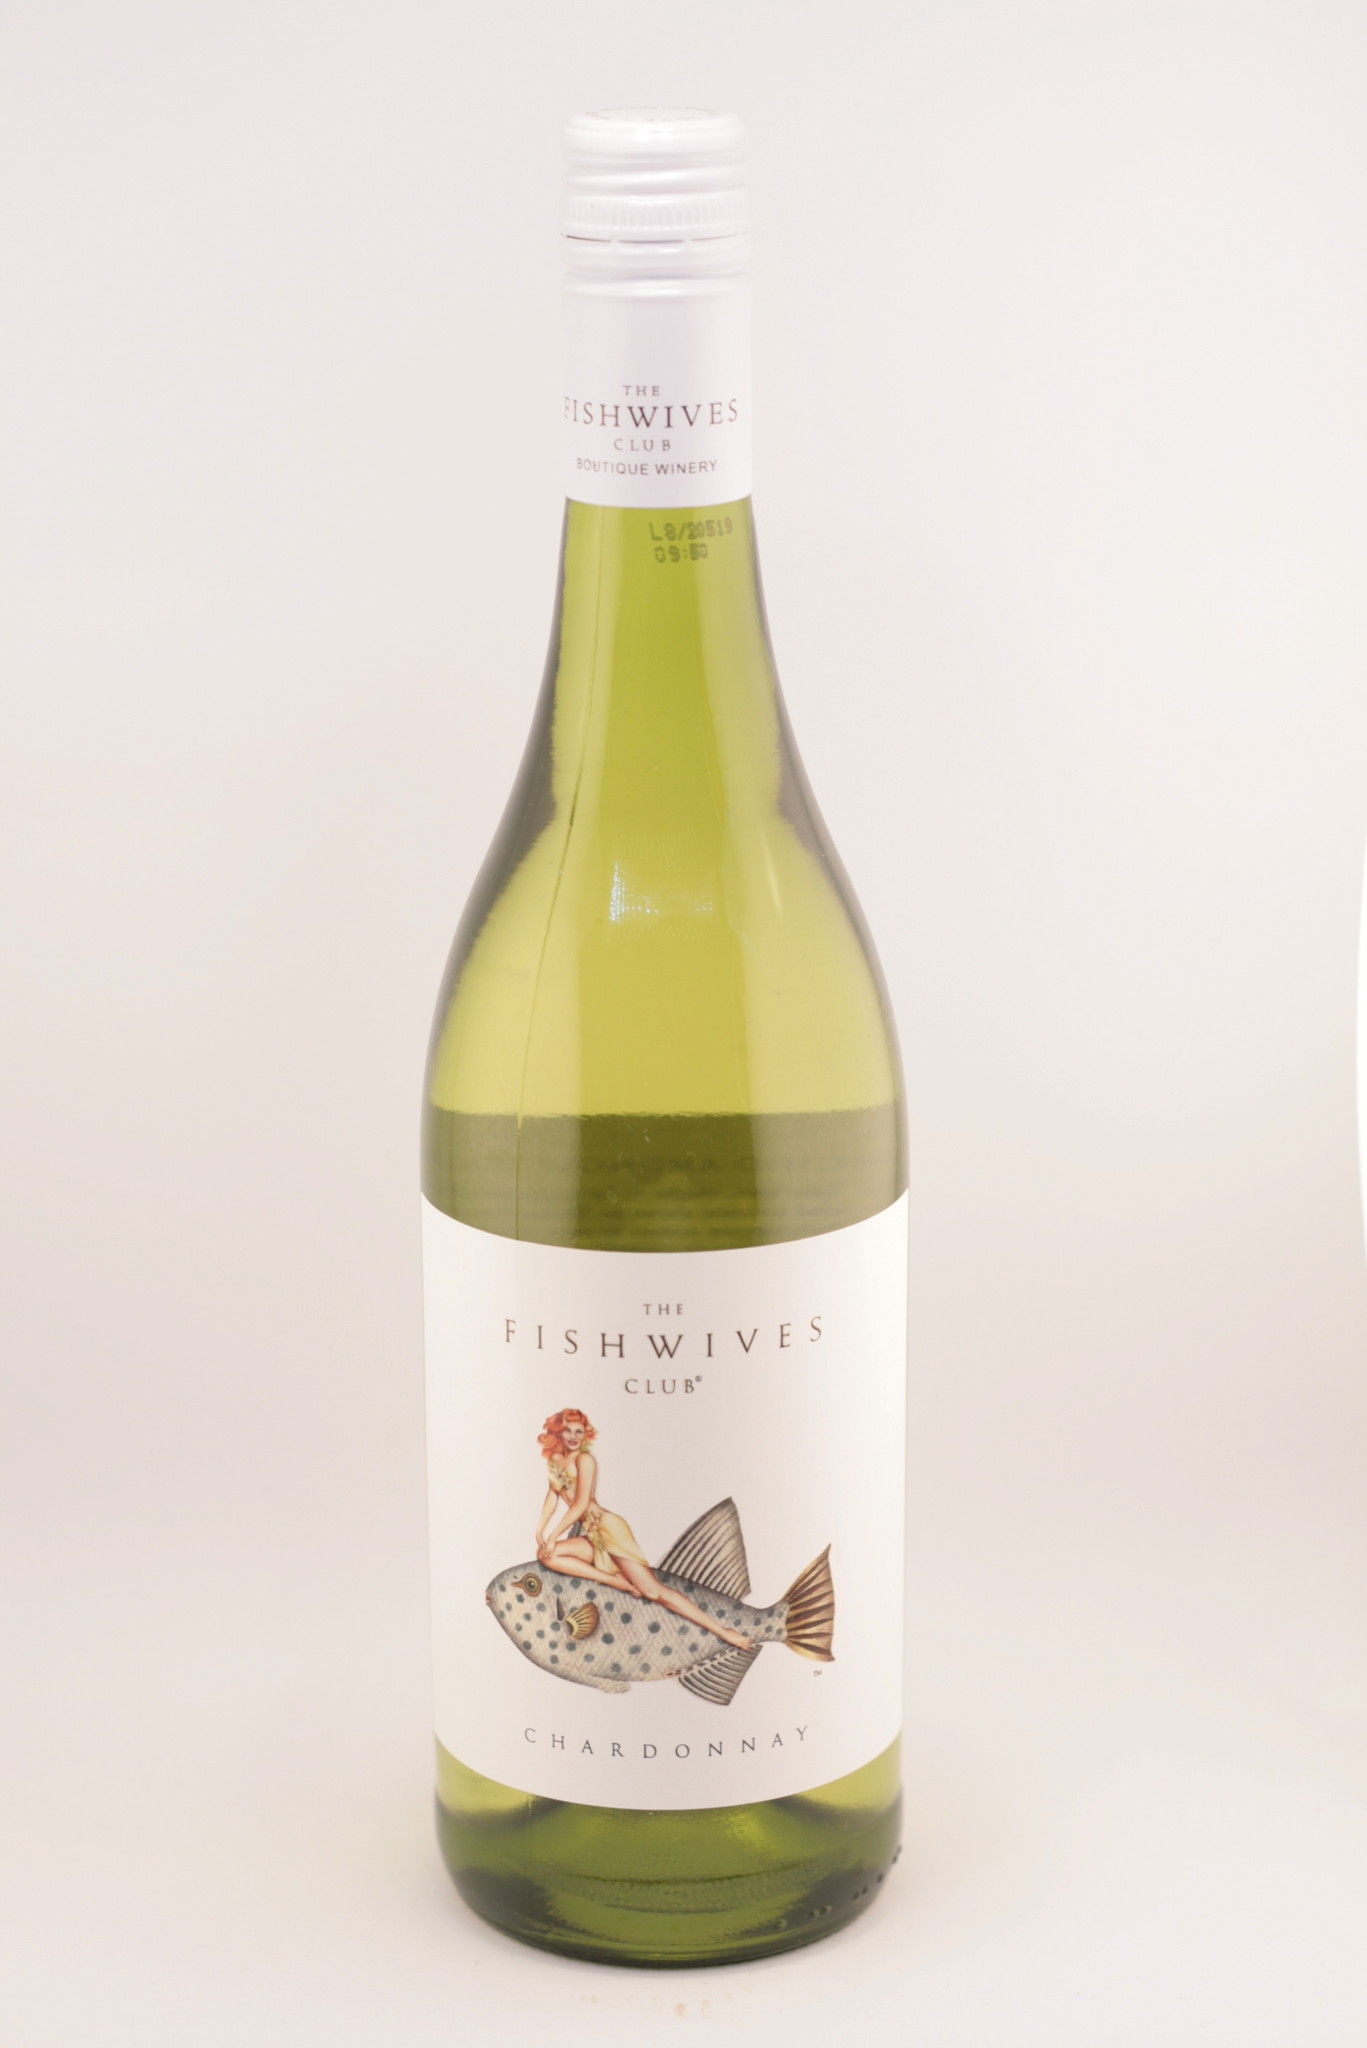 The Lady   The Fishwives Club  The boutique Winery  Chardonnay